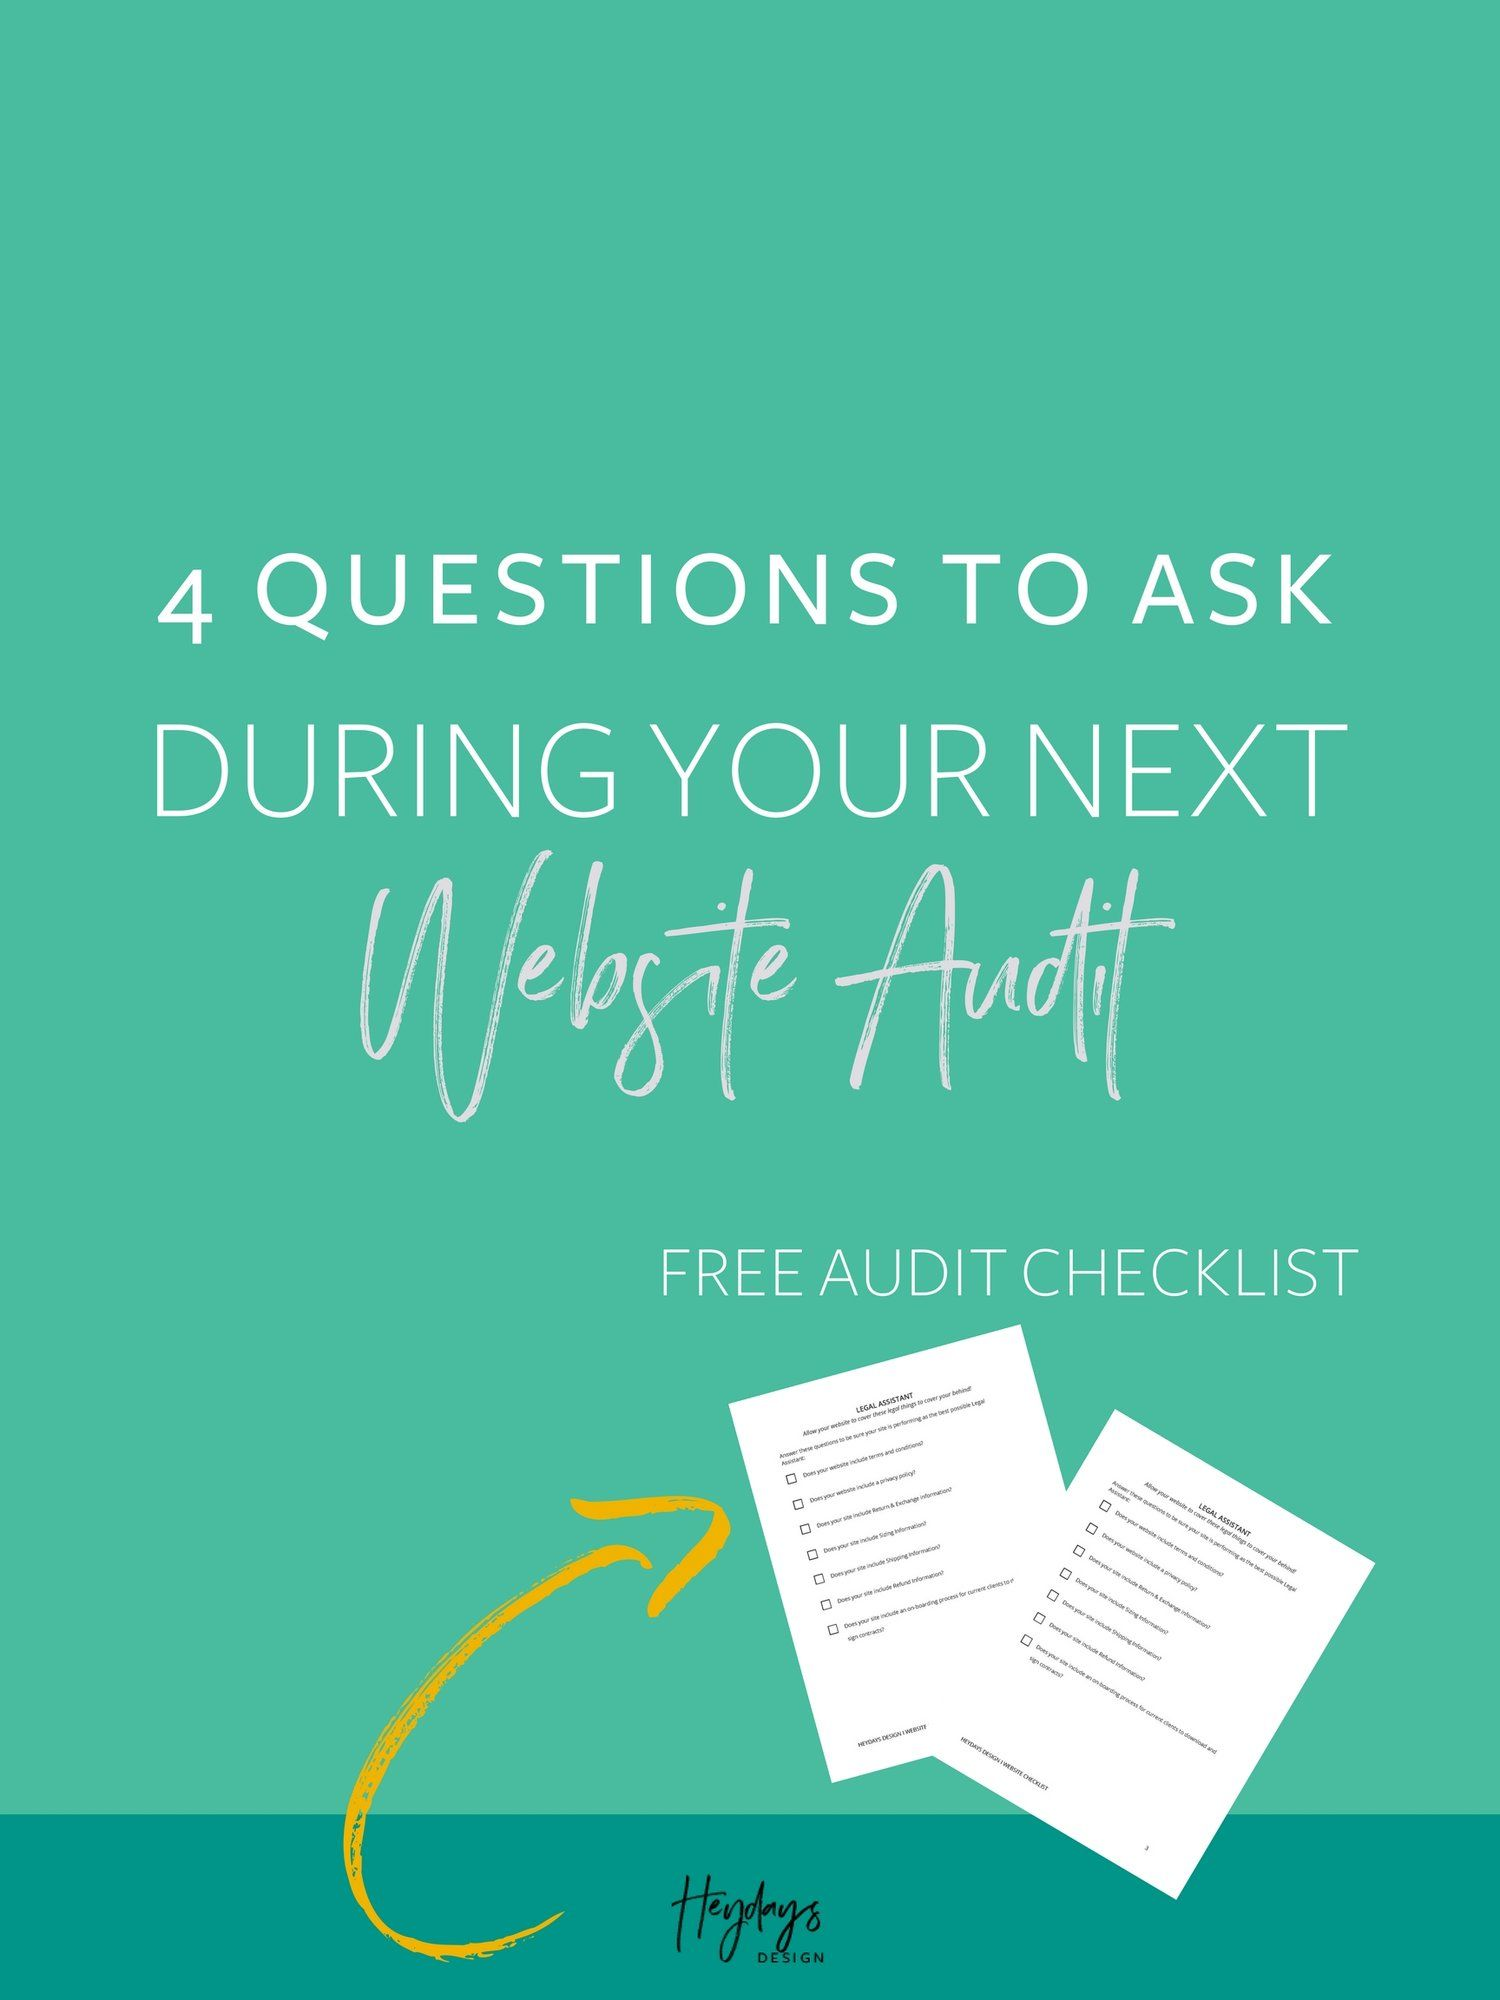 Website Audit L Download A Website Audit Checklist To Use When You